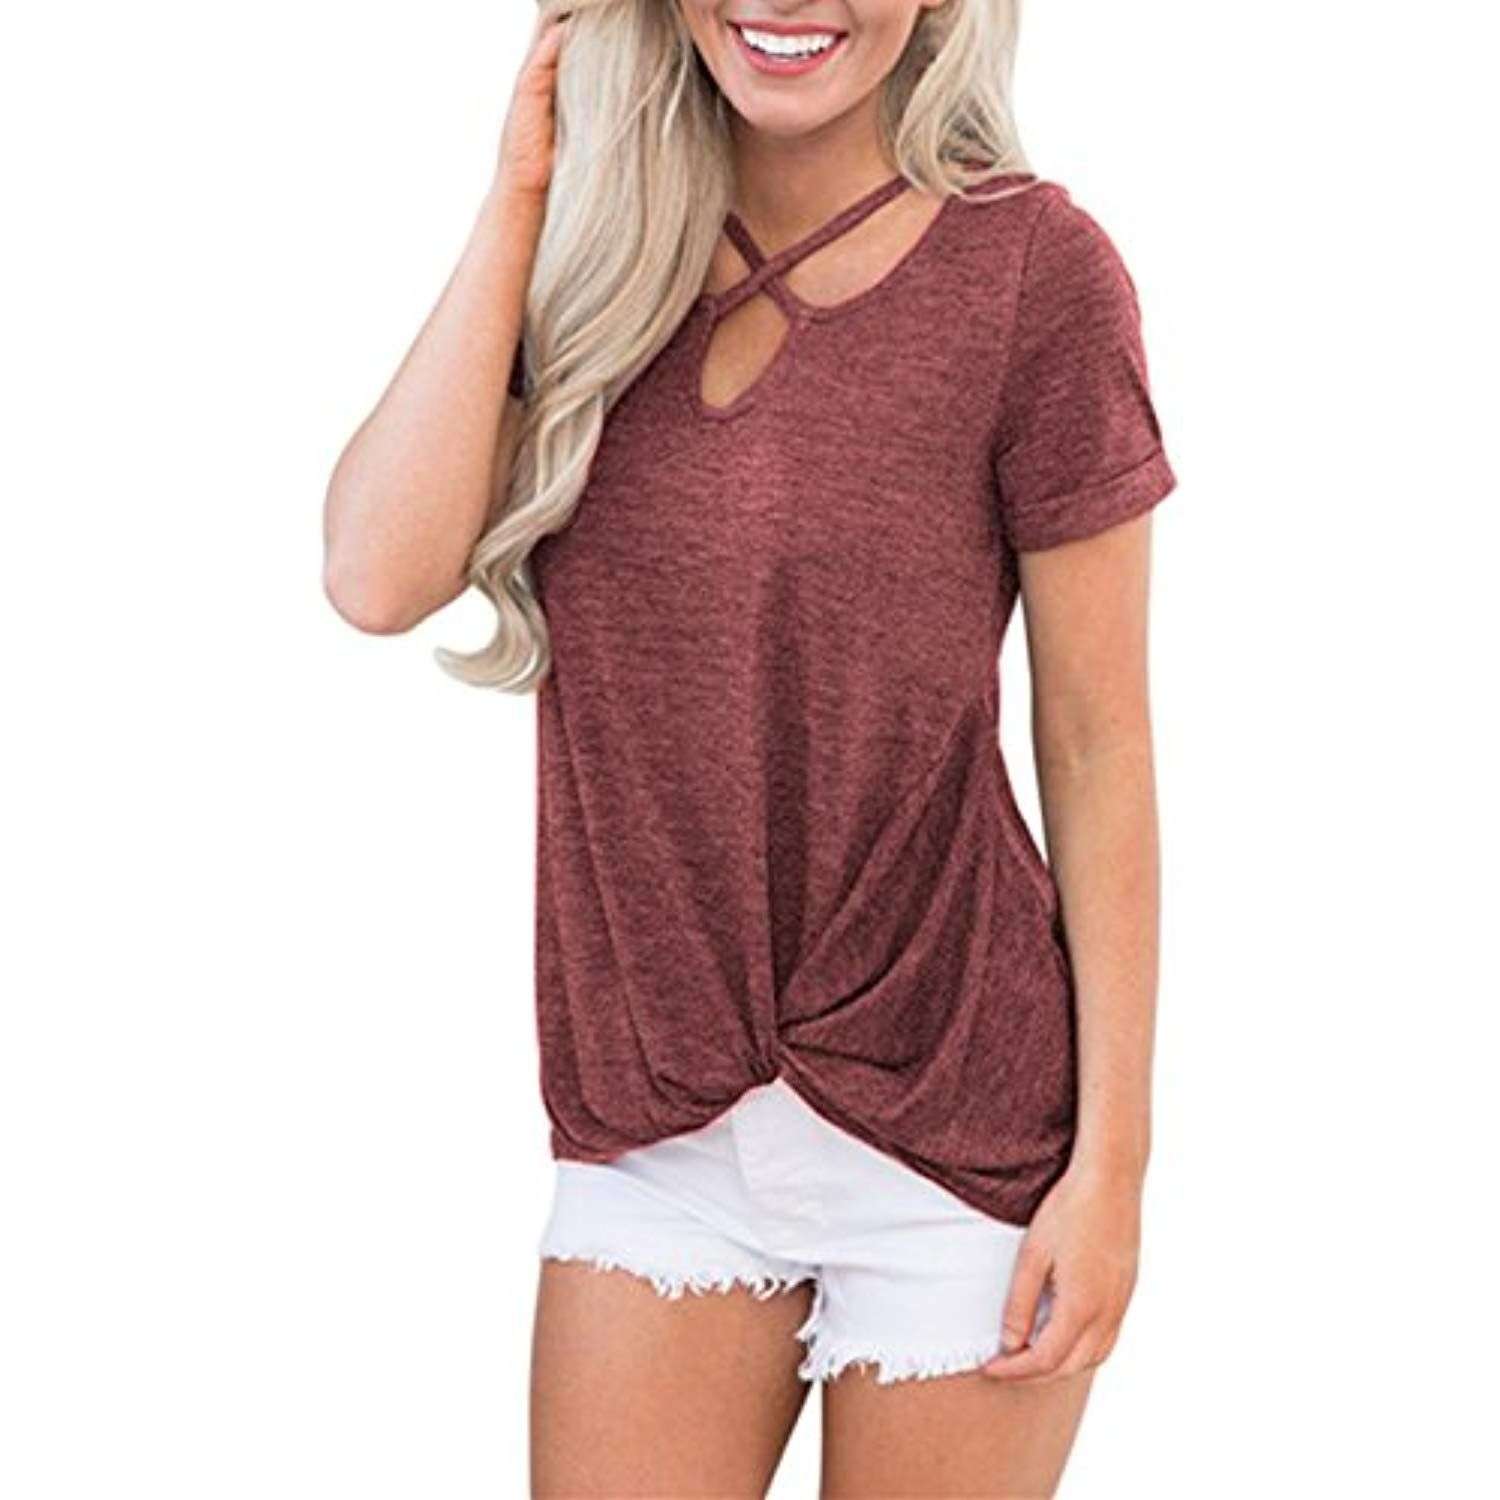 Women Plus Size Cross Lace Two Tone Knotted T Shirt Tops Short Sleeve Blouse